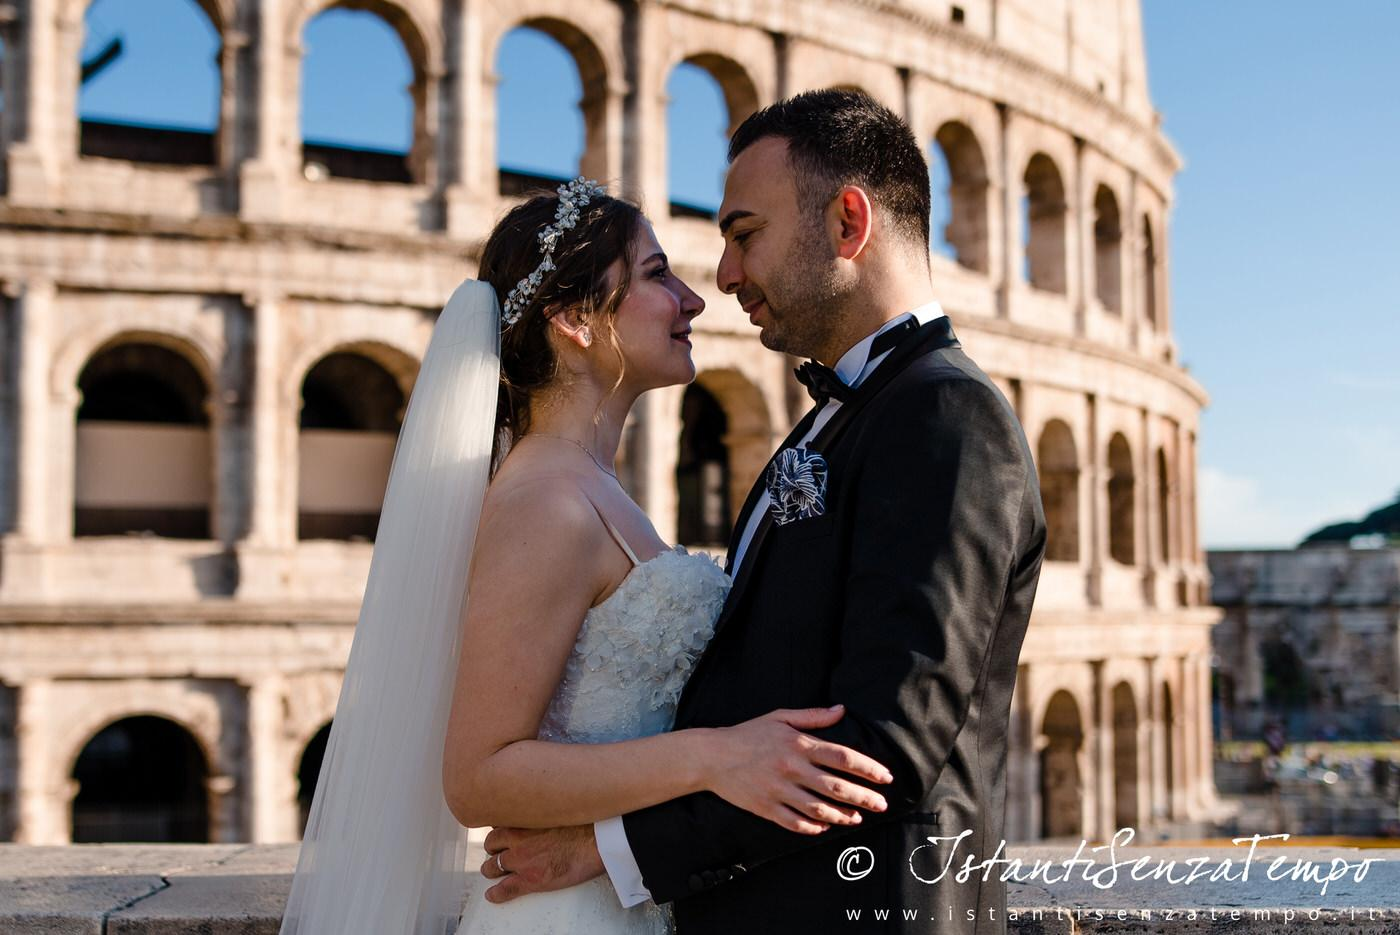 turkish wedding in rome italy-22